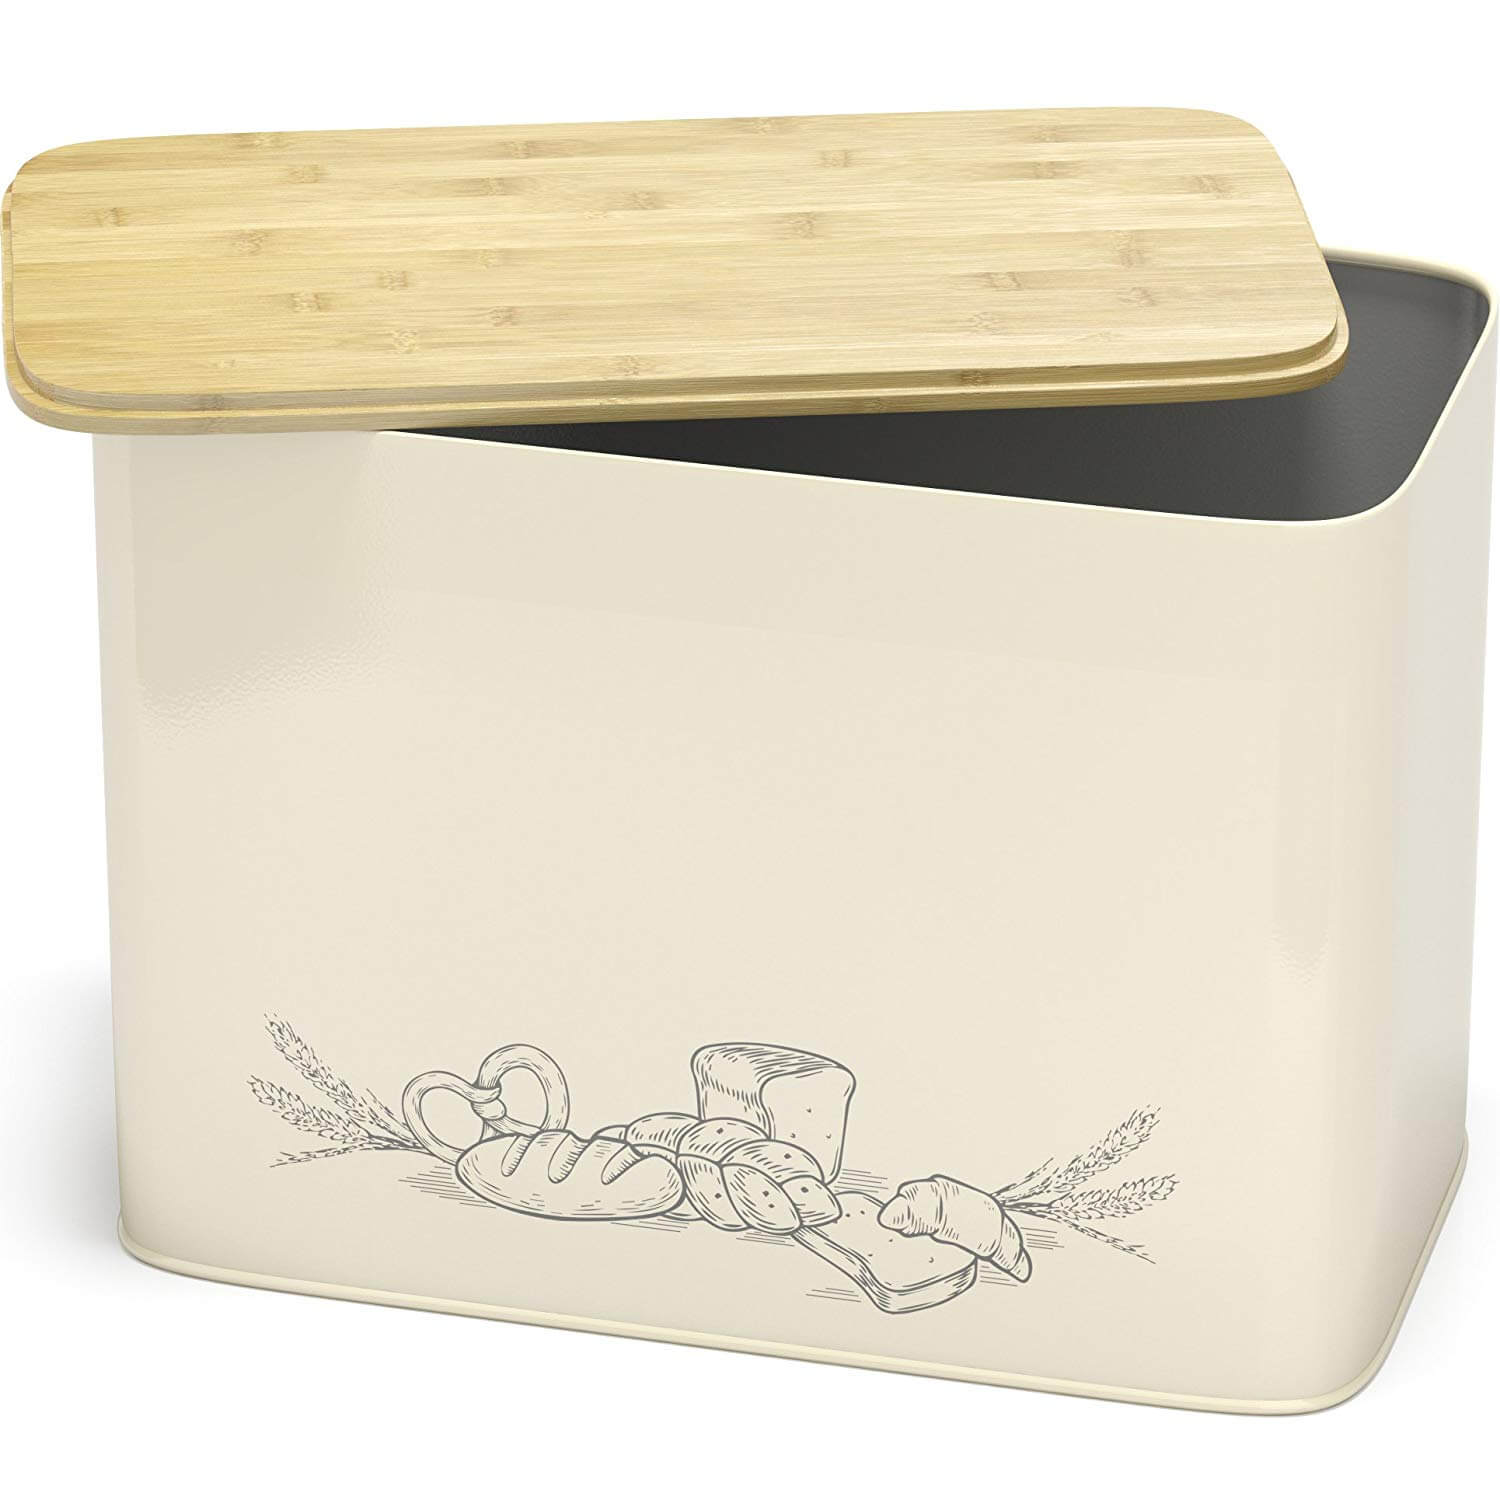 Cooler Kitchen Bread Box with Cutting Lid